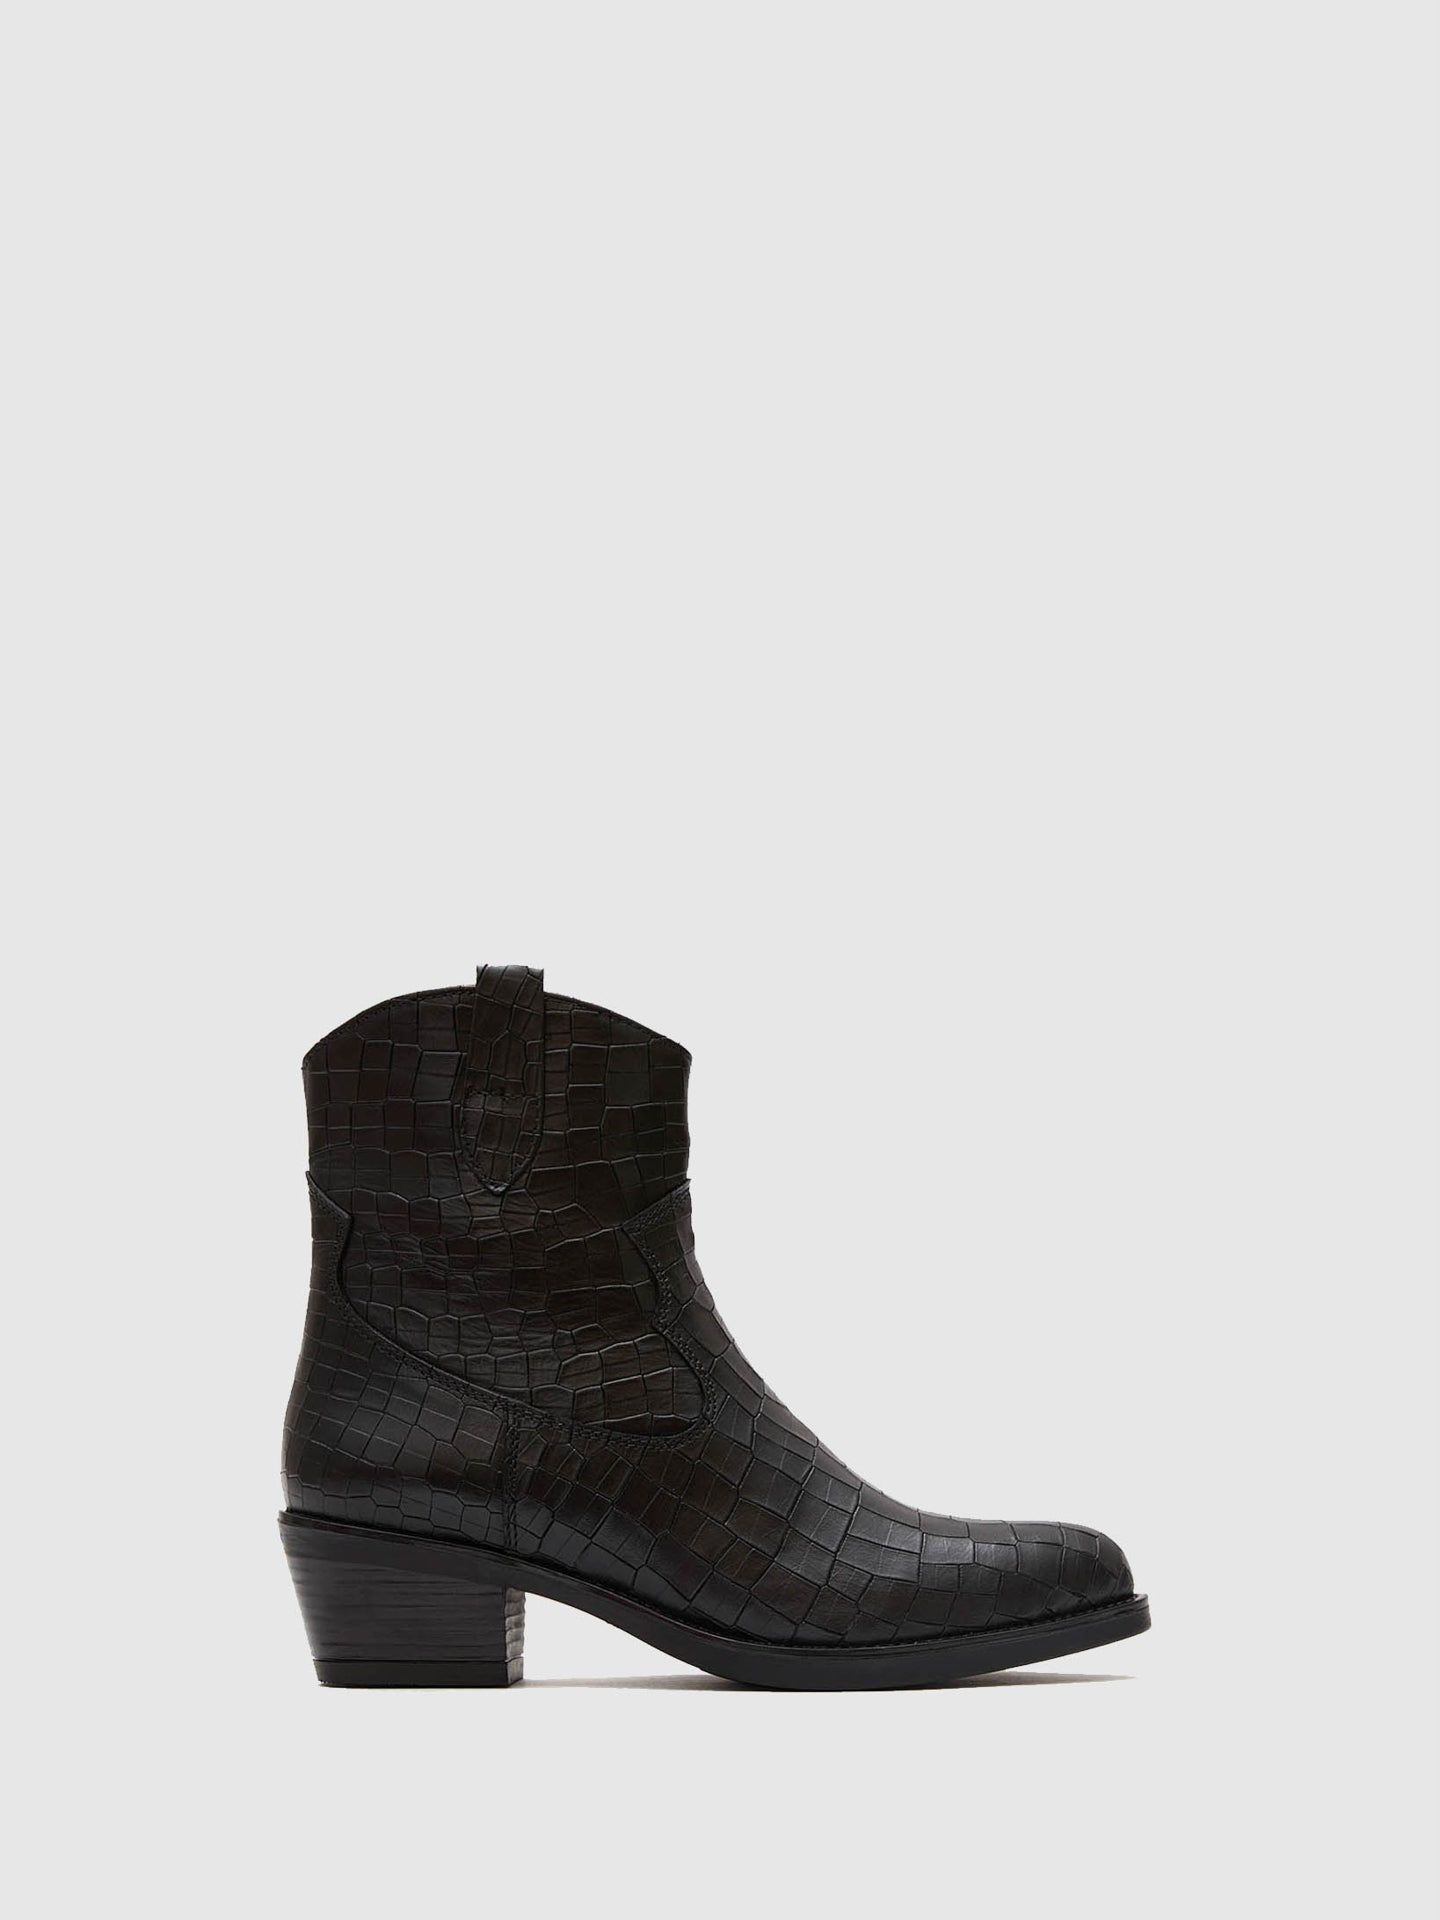 Marila Shoes Black Round Toe Boots